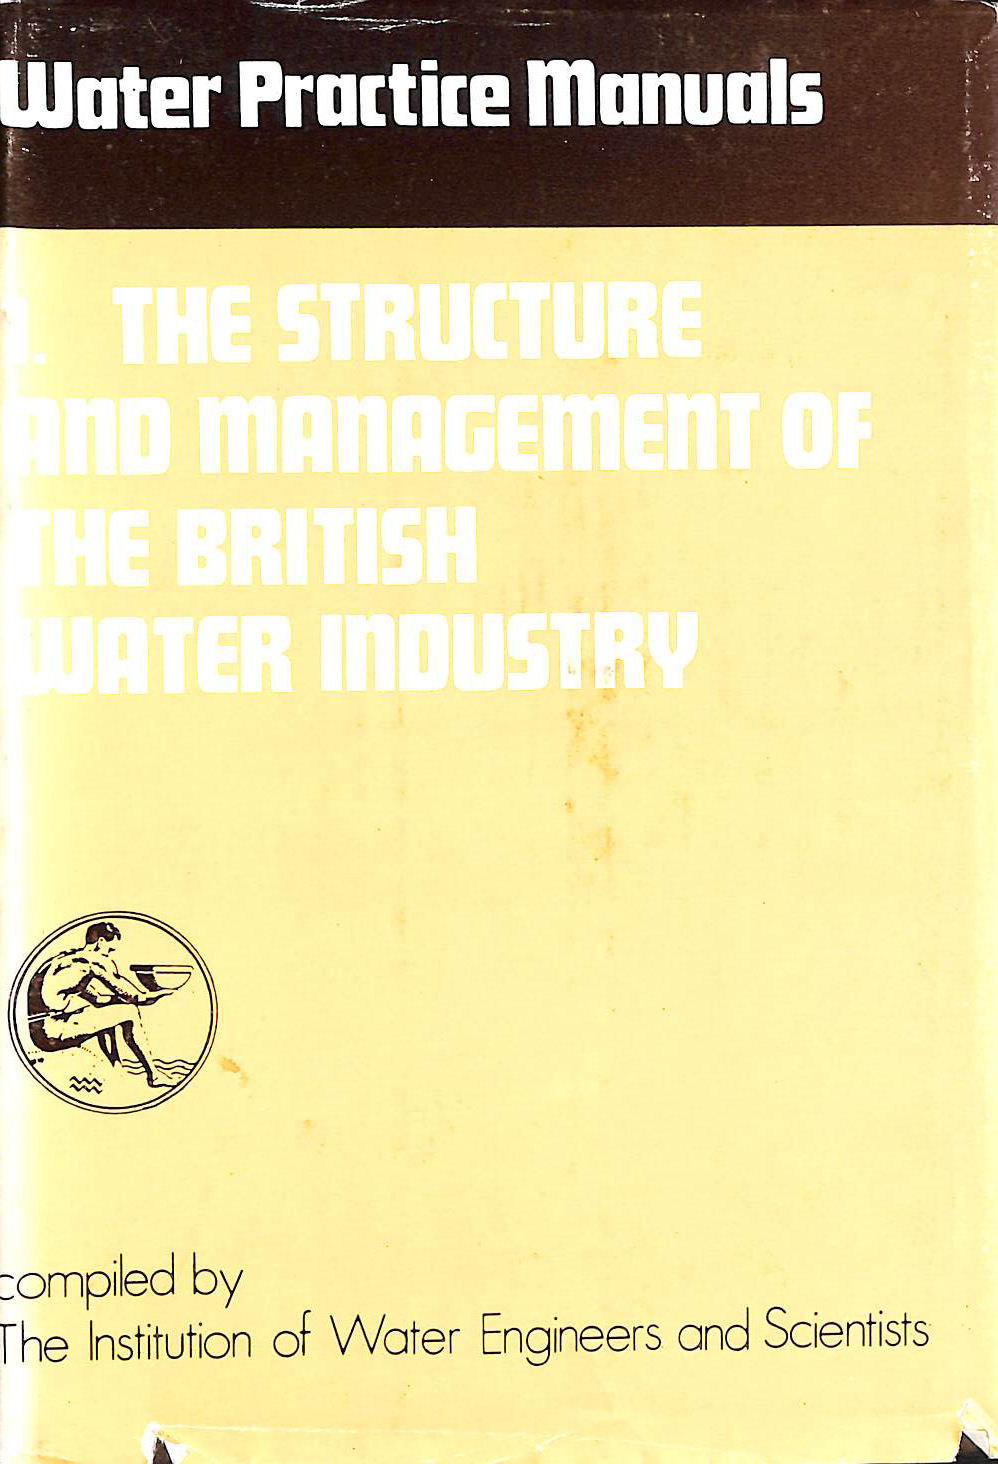 Image for The Structure and Management of the British Water Industry (Water practice manuals)